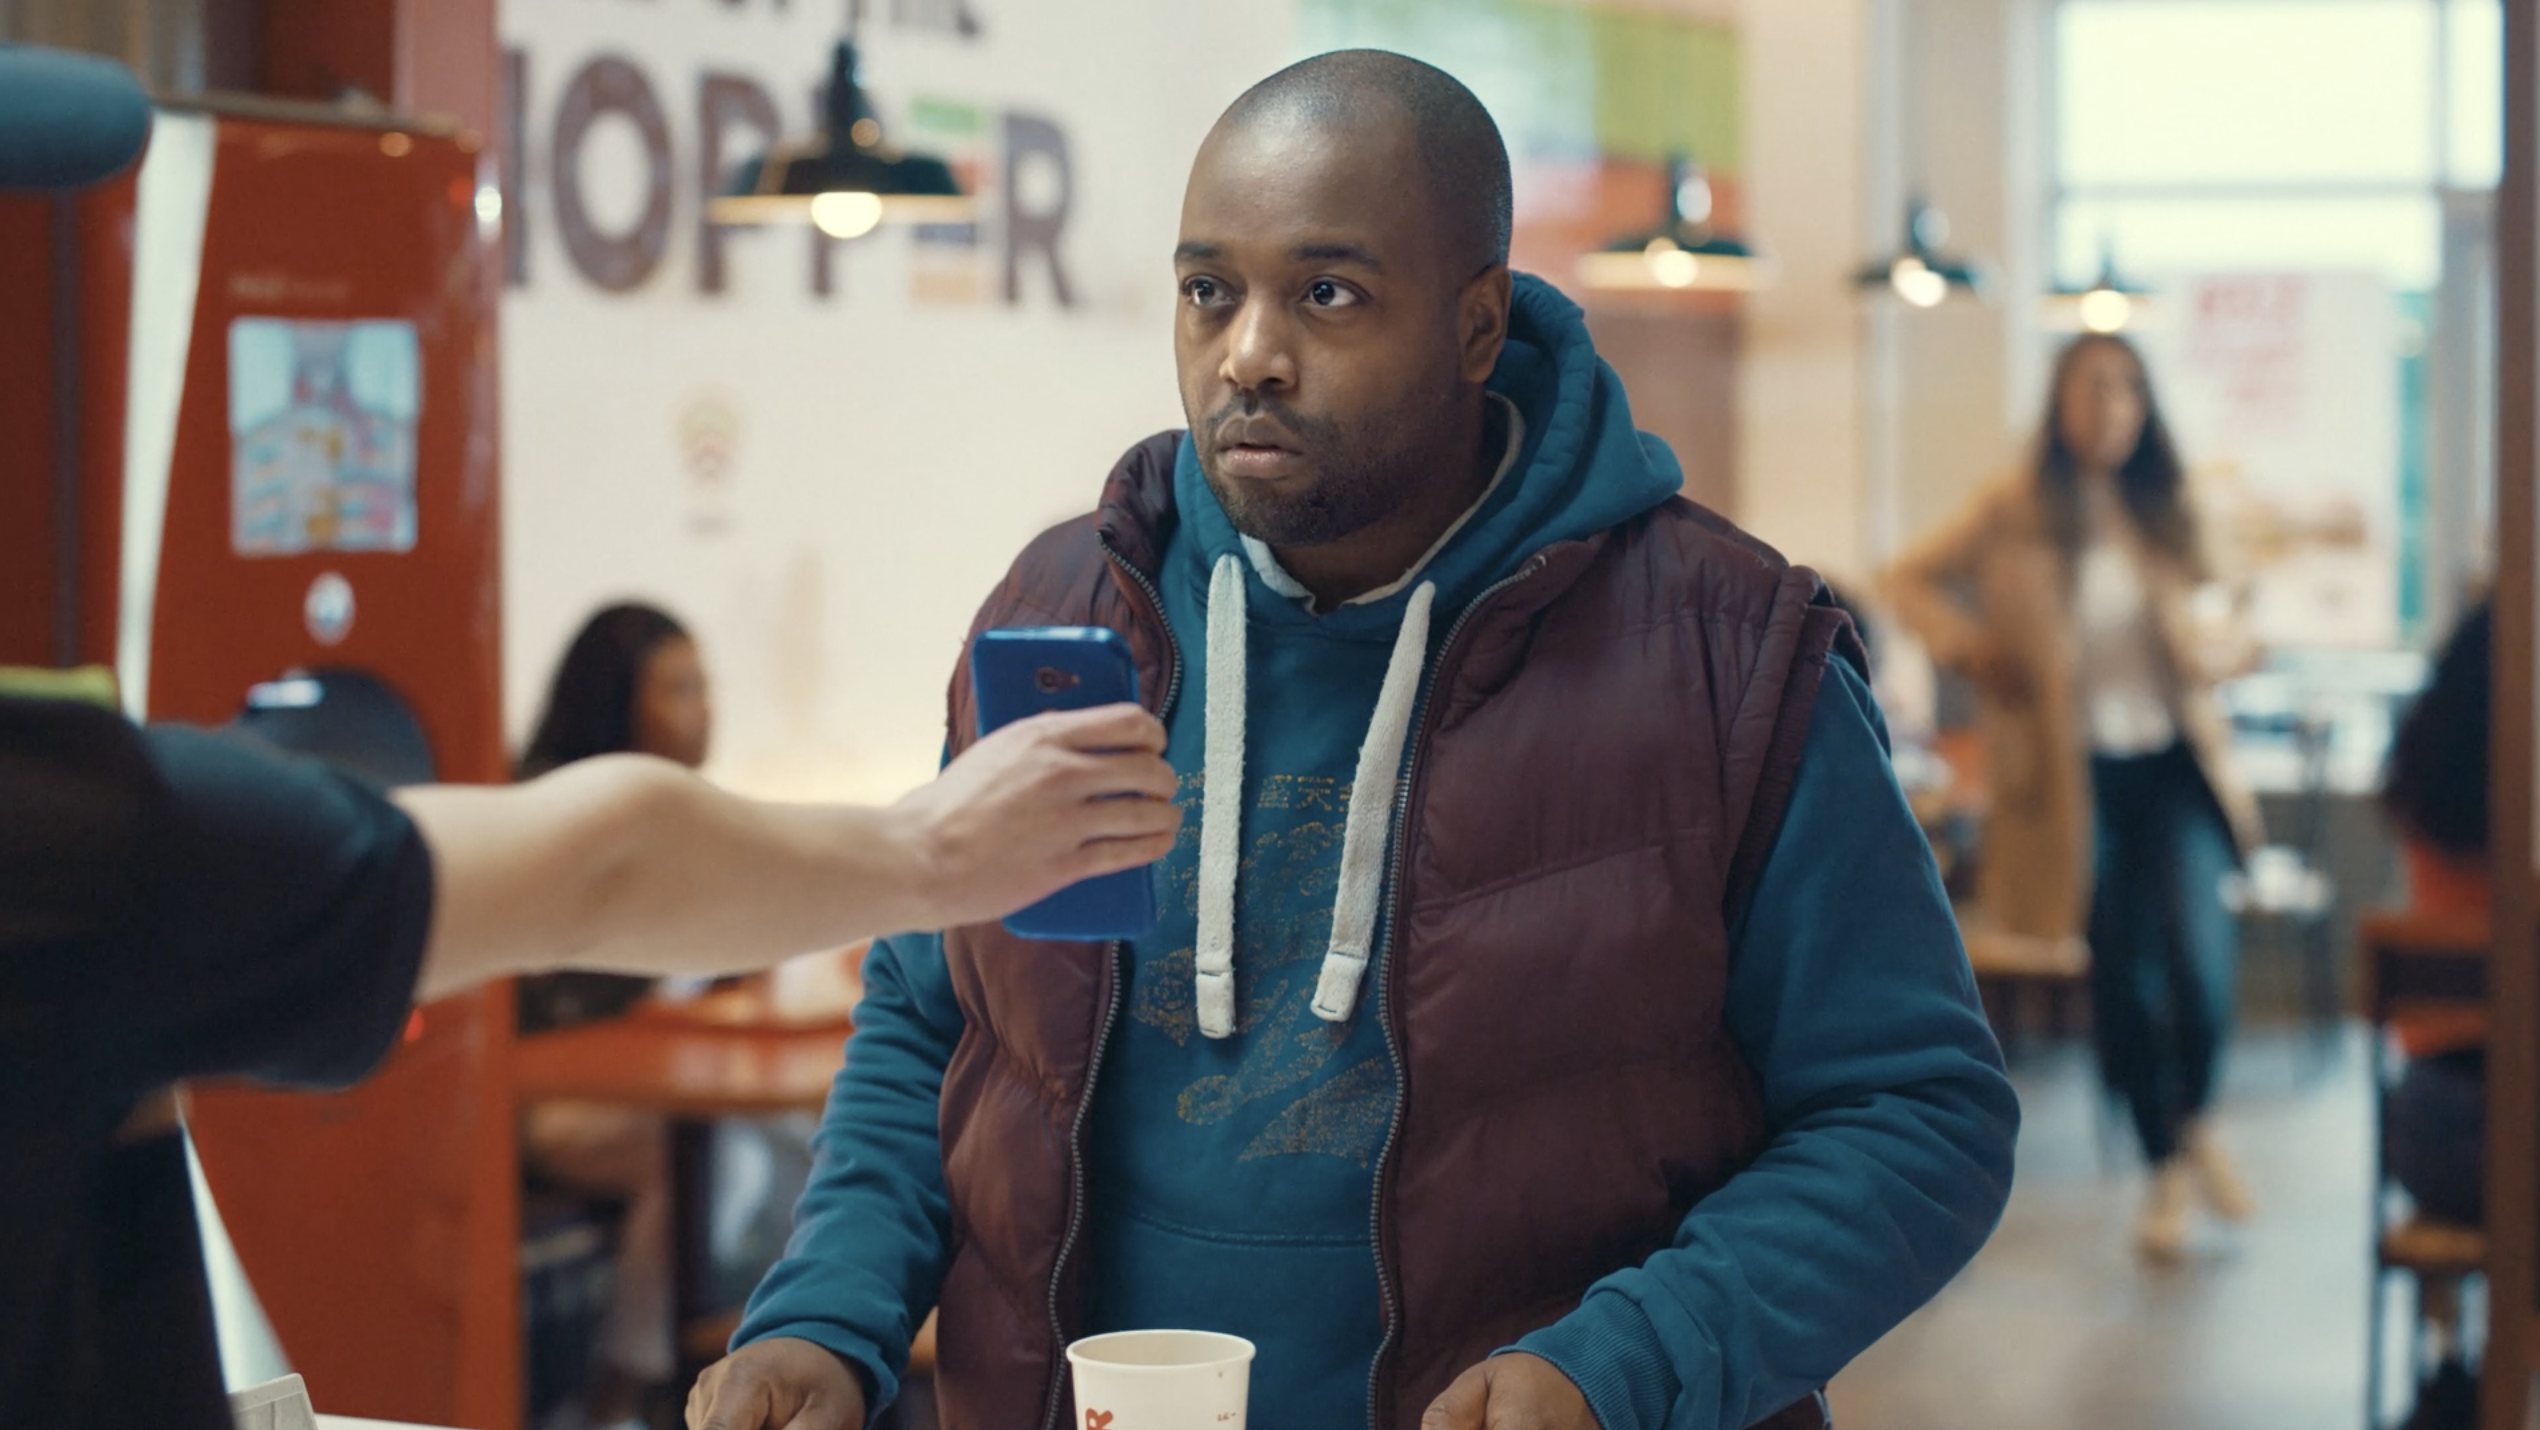 Burger King Deals Are So Good Customers Owe Them in Latest Ads